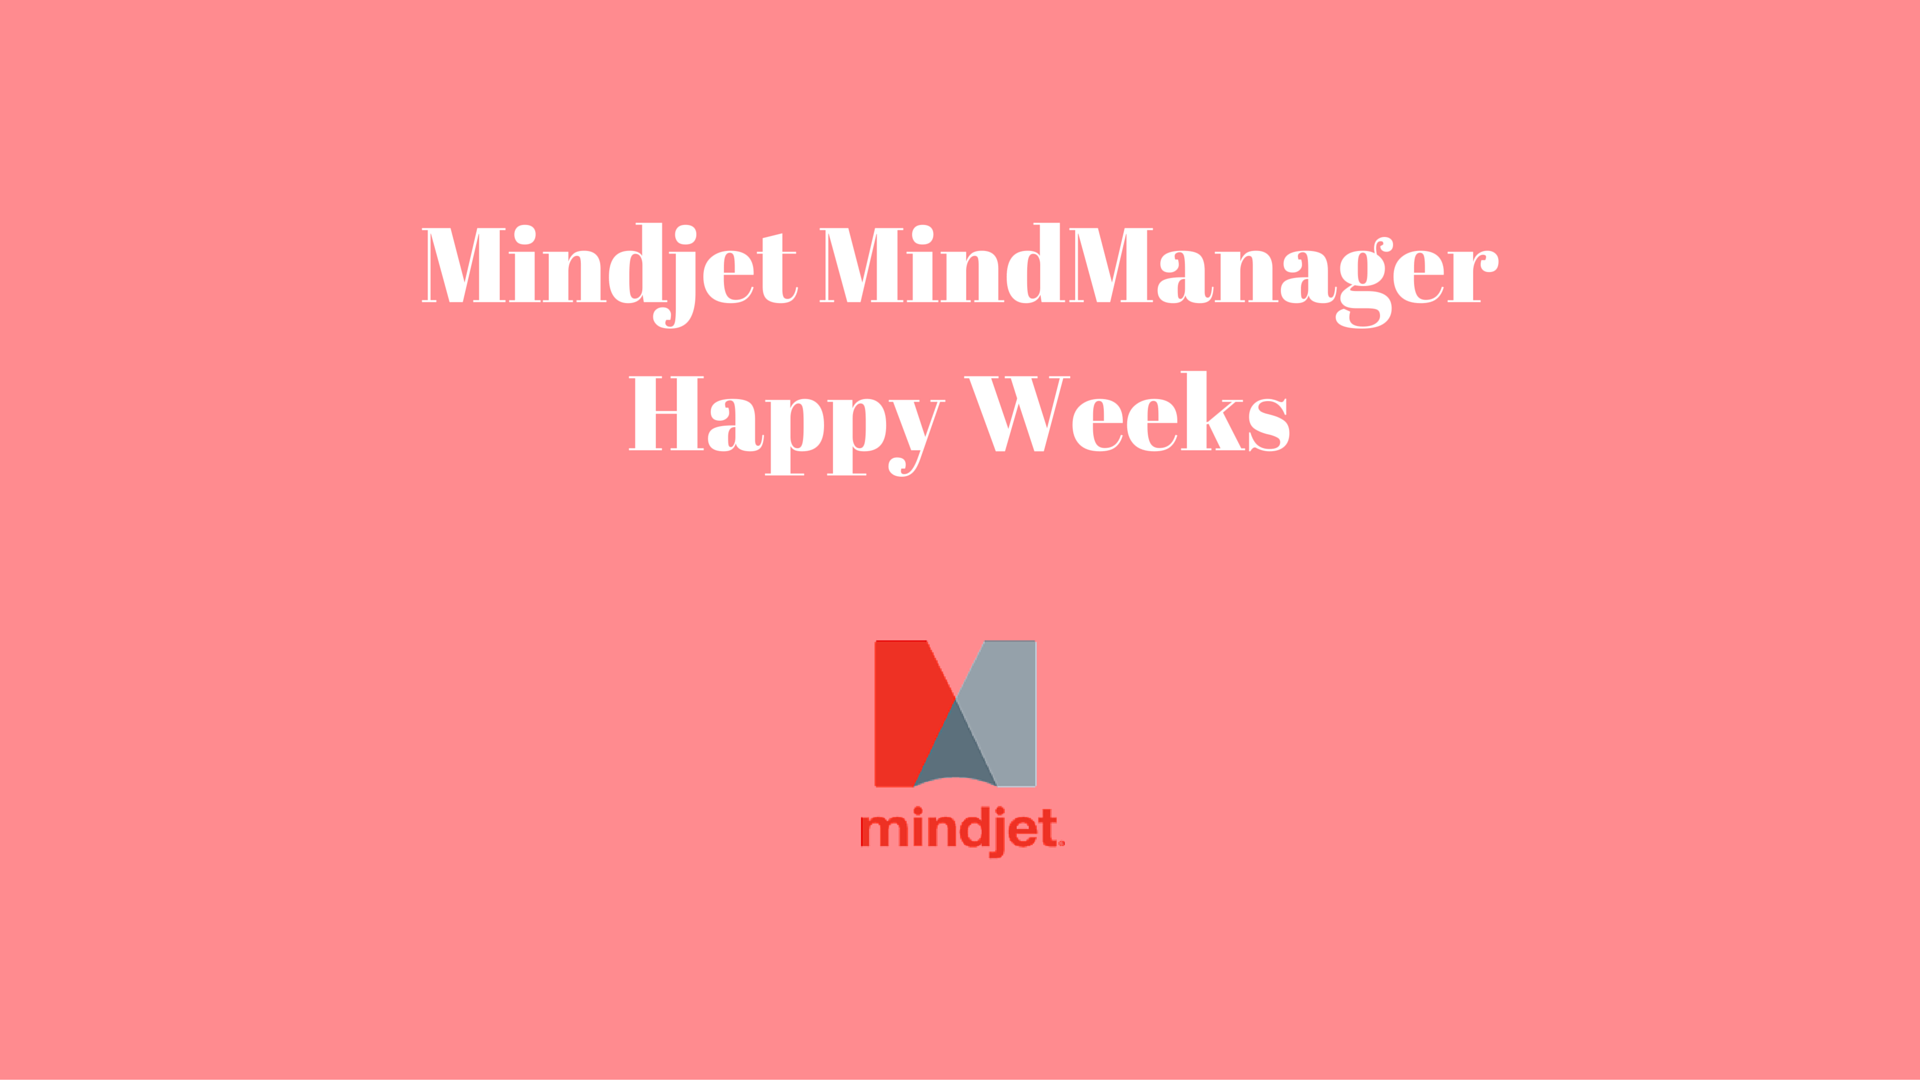 Mindjet MindManager Happy Weeks